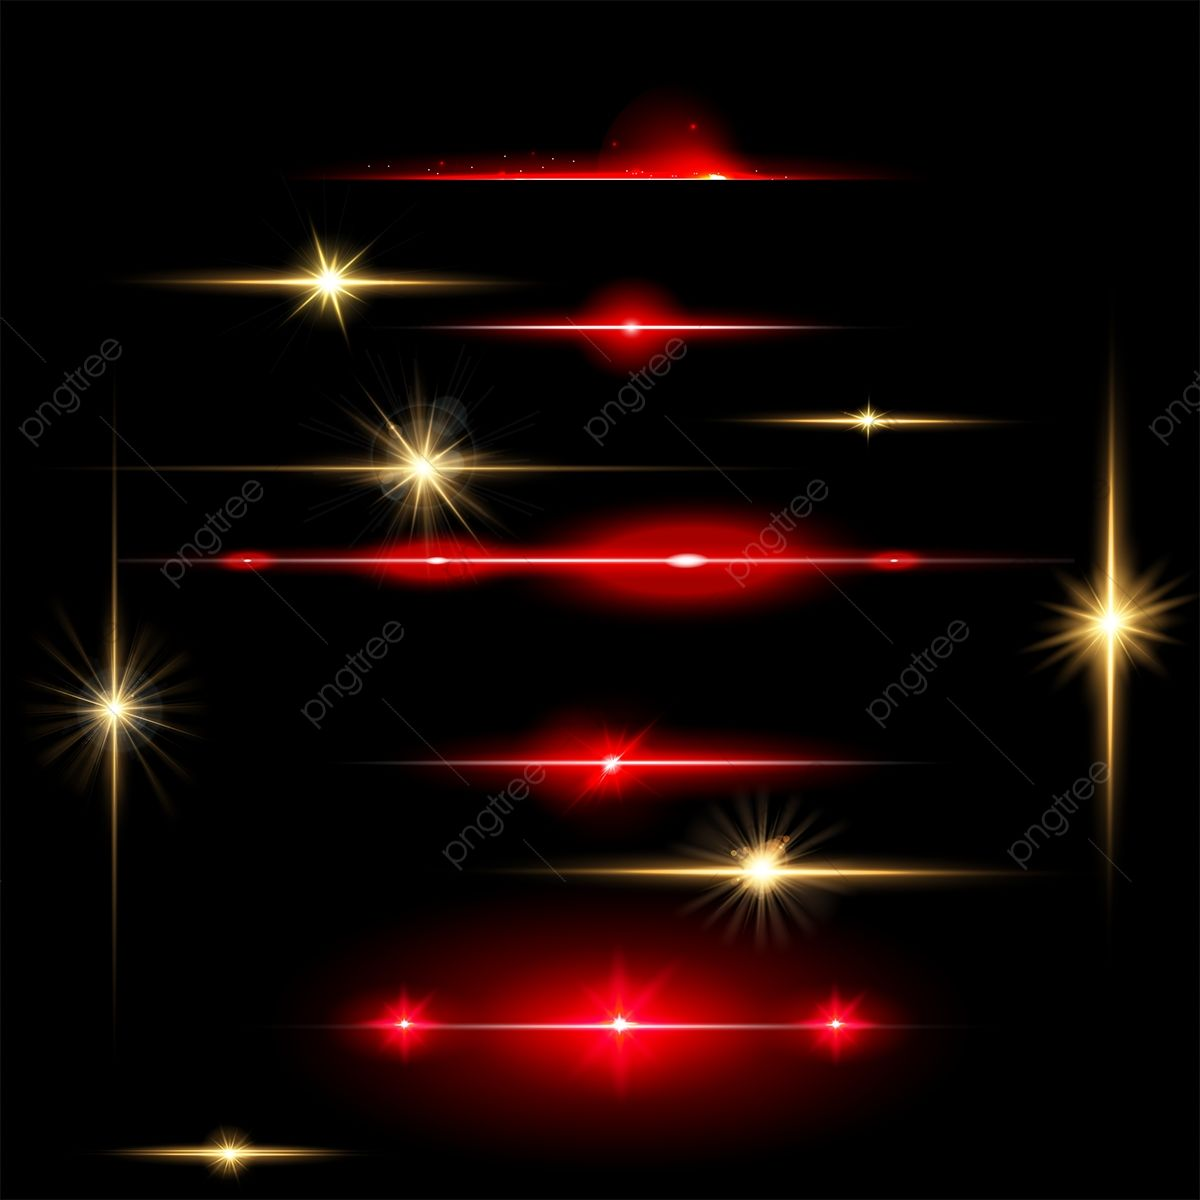 Red Glow Template Light Red Color Divider Png And Vector With Transparent Background For Free Download Transparent Background Light Red Background